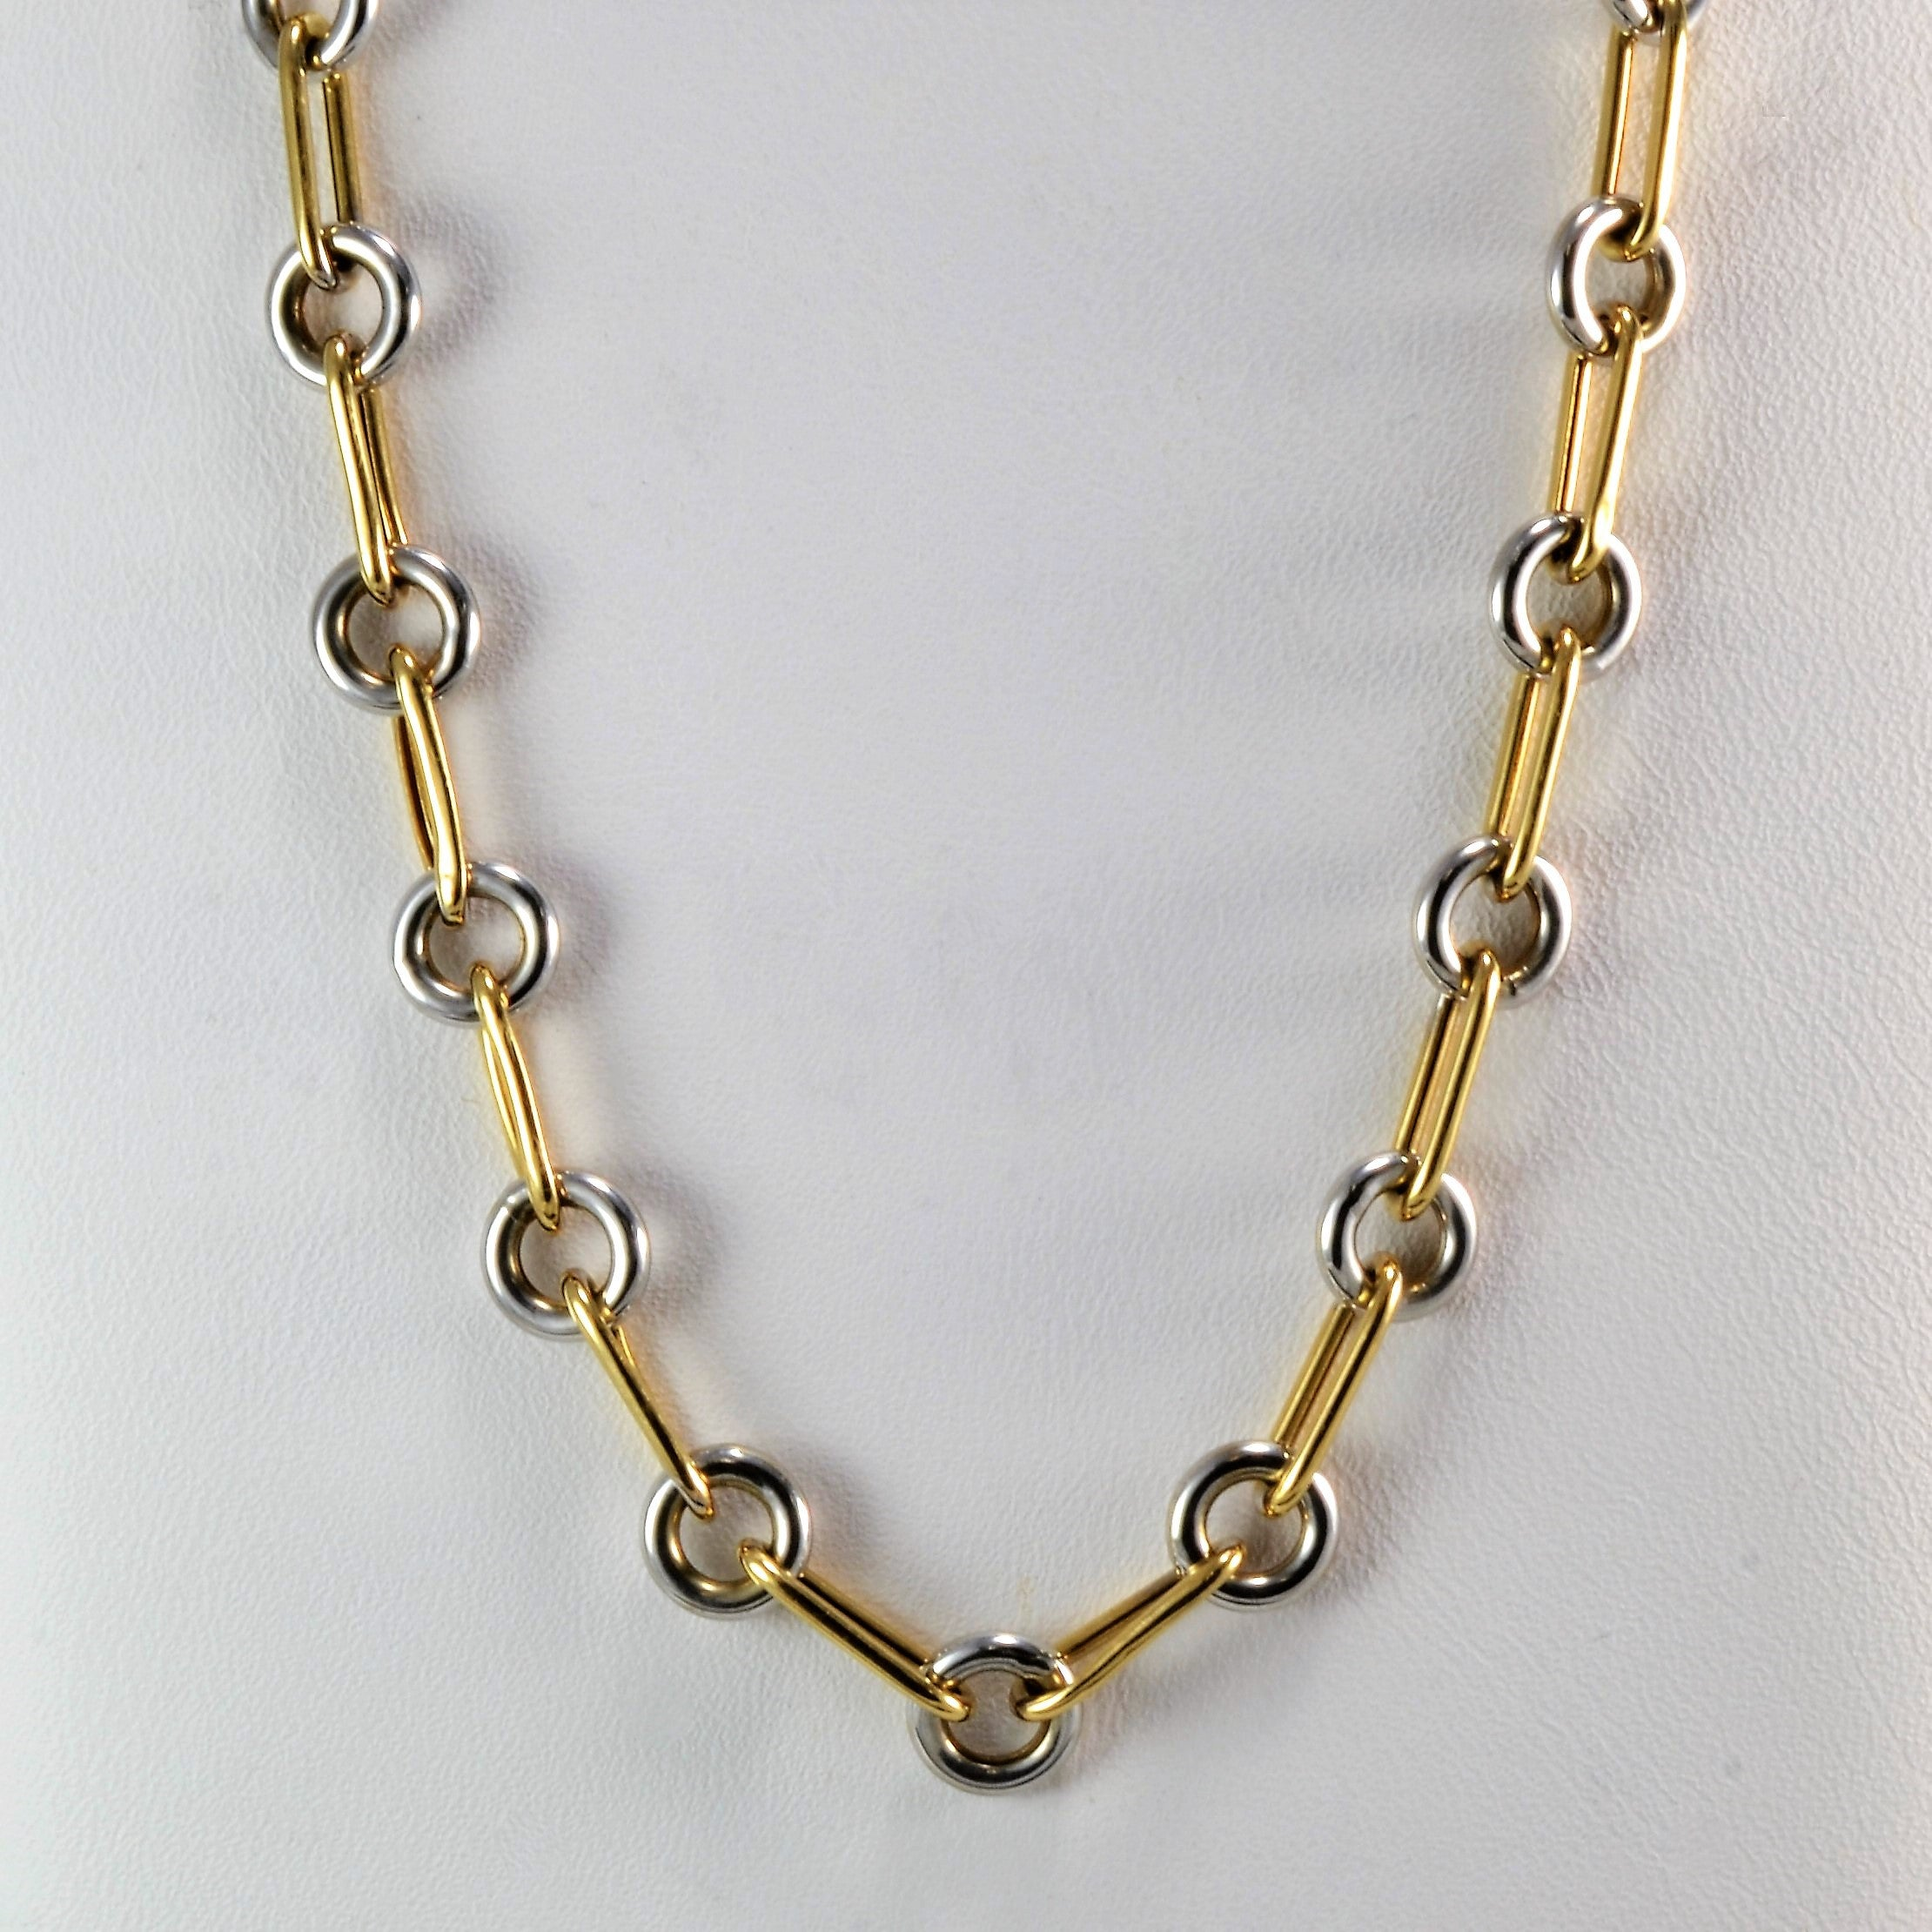 Two Tone Link Necklace | 20"